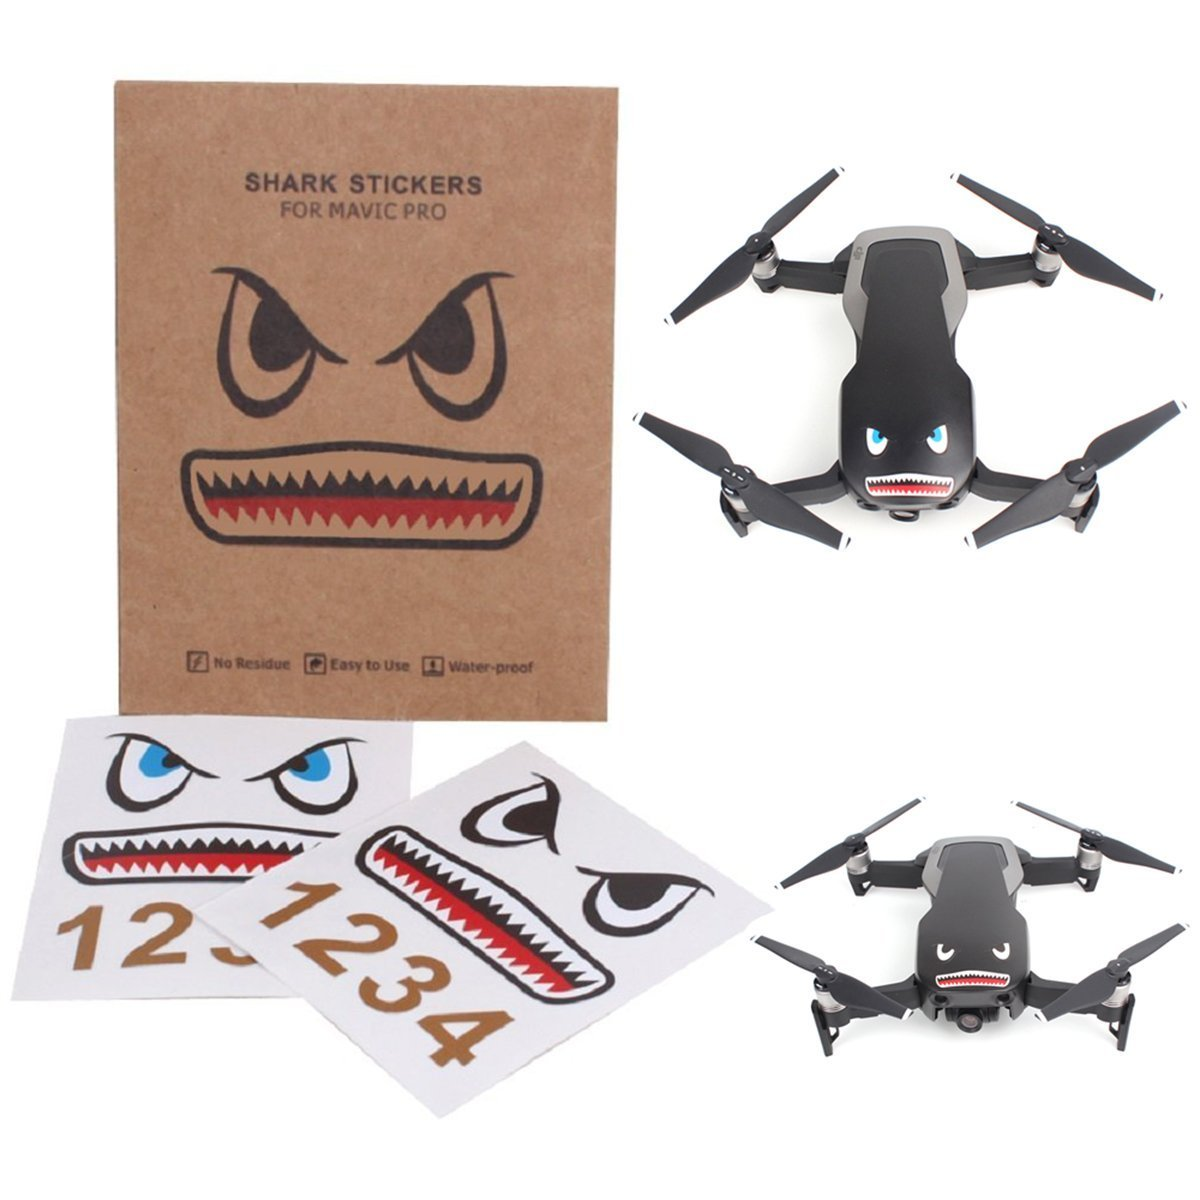 Crazepony-UK Mavic Pro Sticker Decal Skin Guard Battery Number Sticker Shark face Decal Drone Sticker 3M Waterproof DJI Drone Accessories Mavic Air DJI Spark Skin Sticker Decal